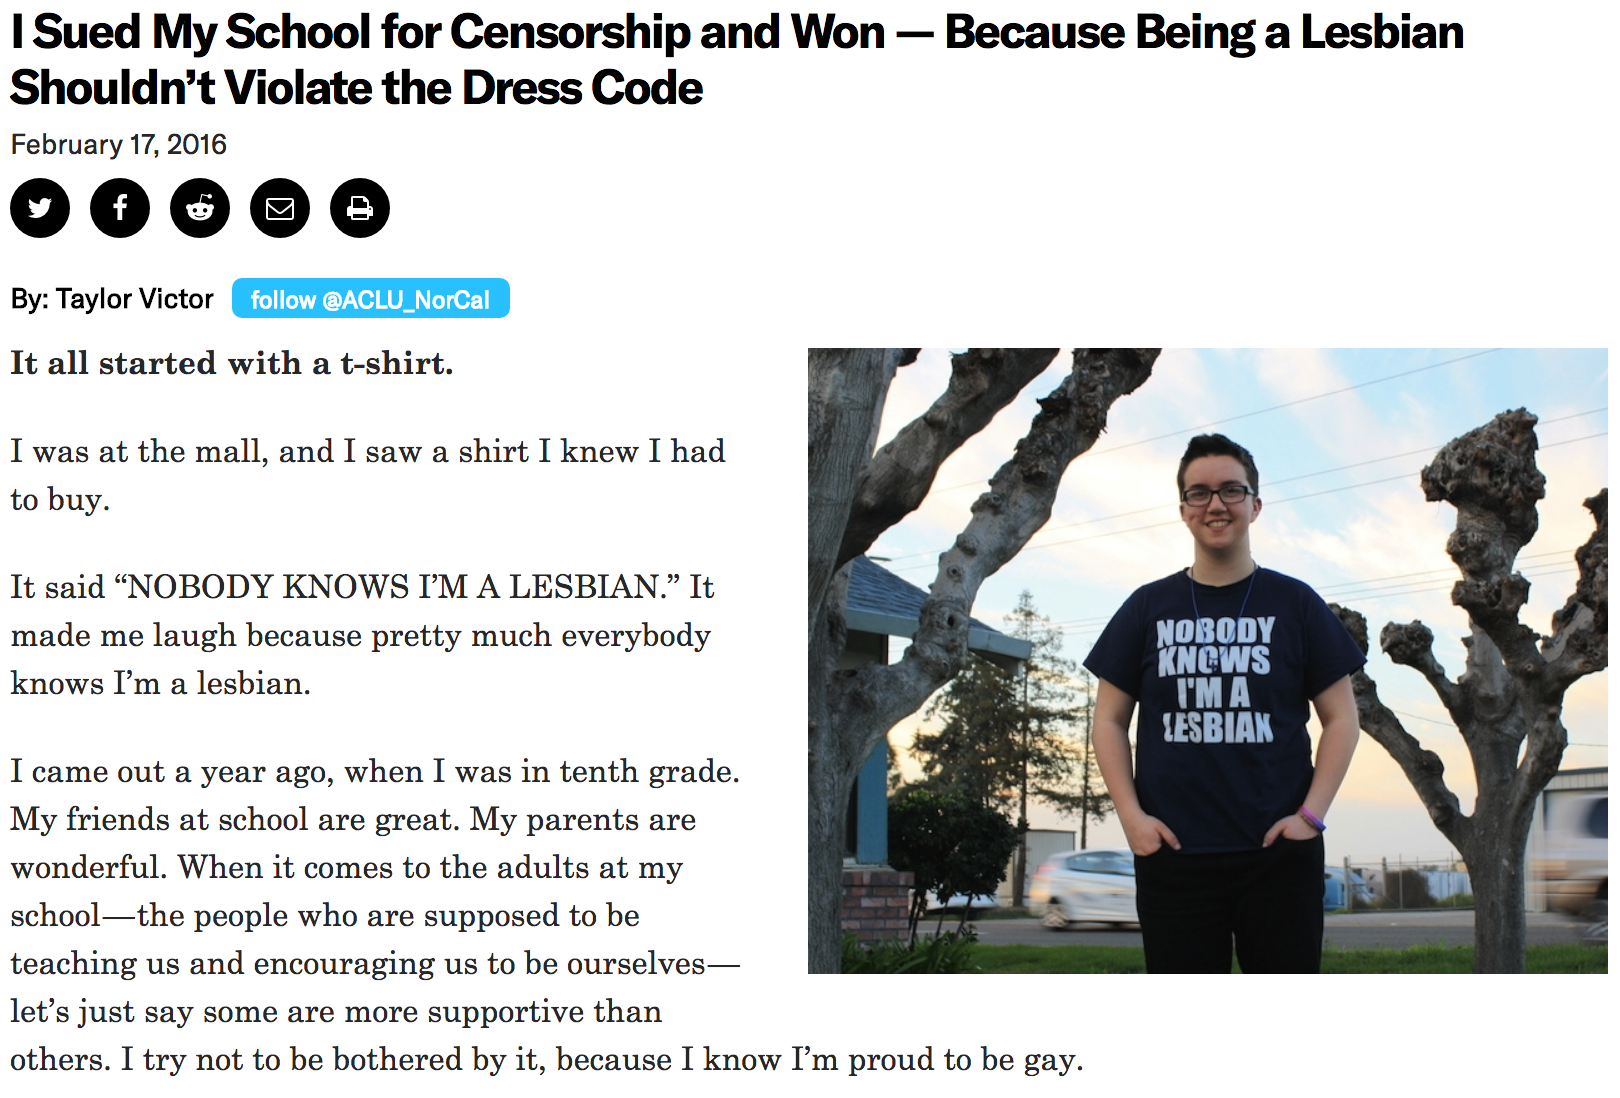 I Sued My School for Censorship Article